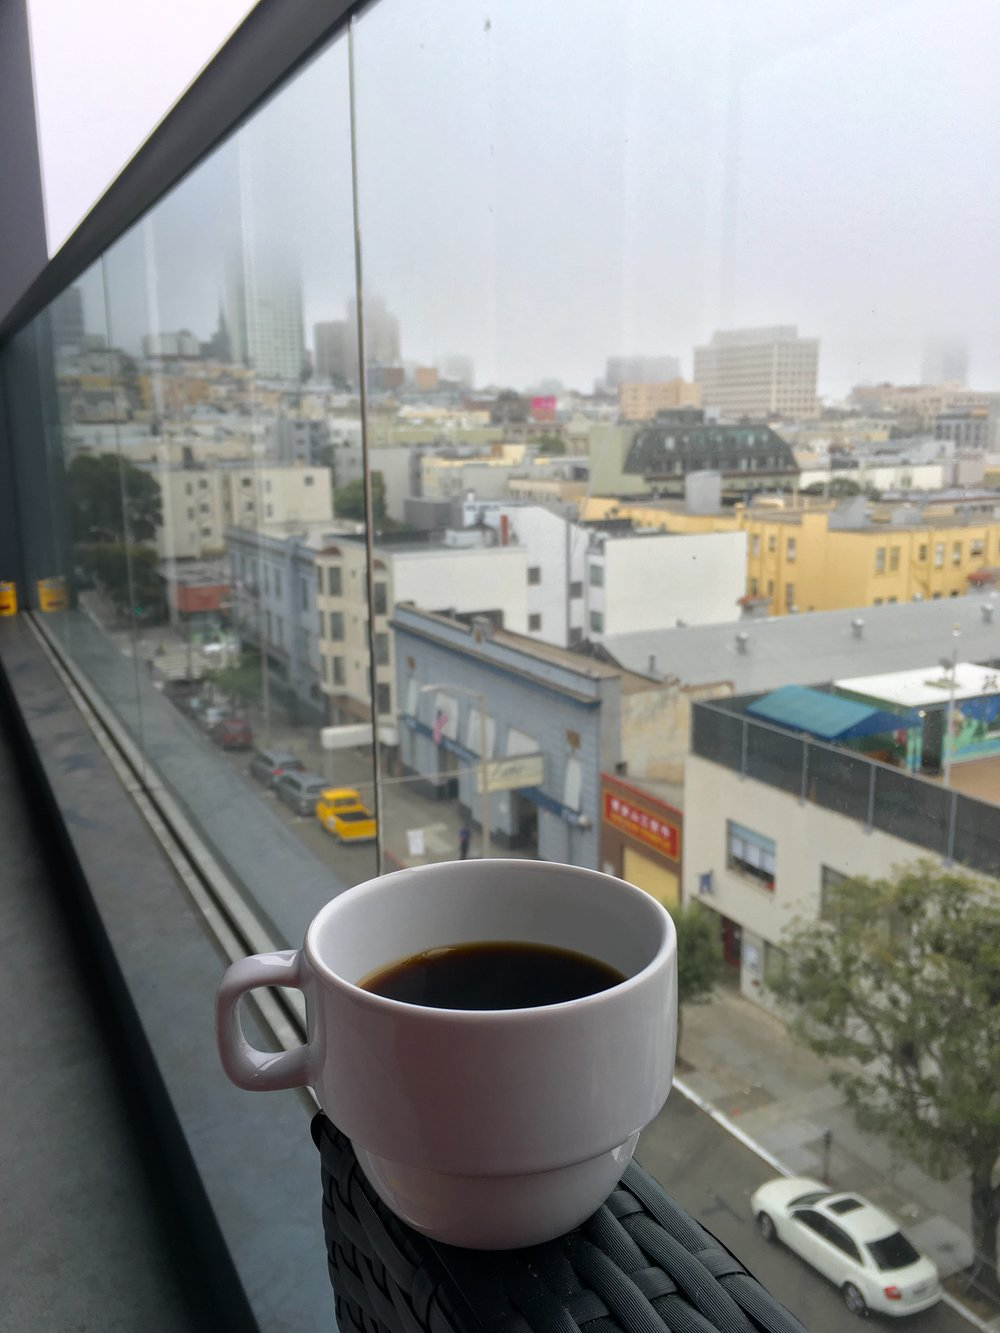 Enjoying a cup of Bleu on the balcony- the only thing keeping me warm on this foggy SF day